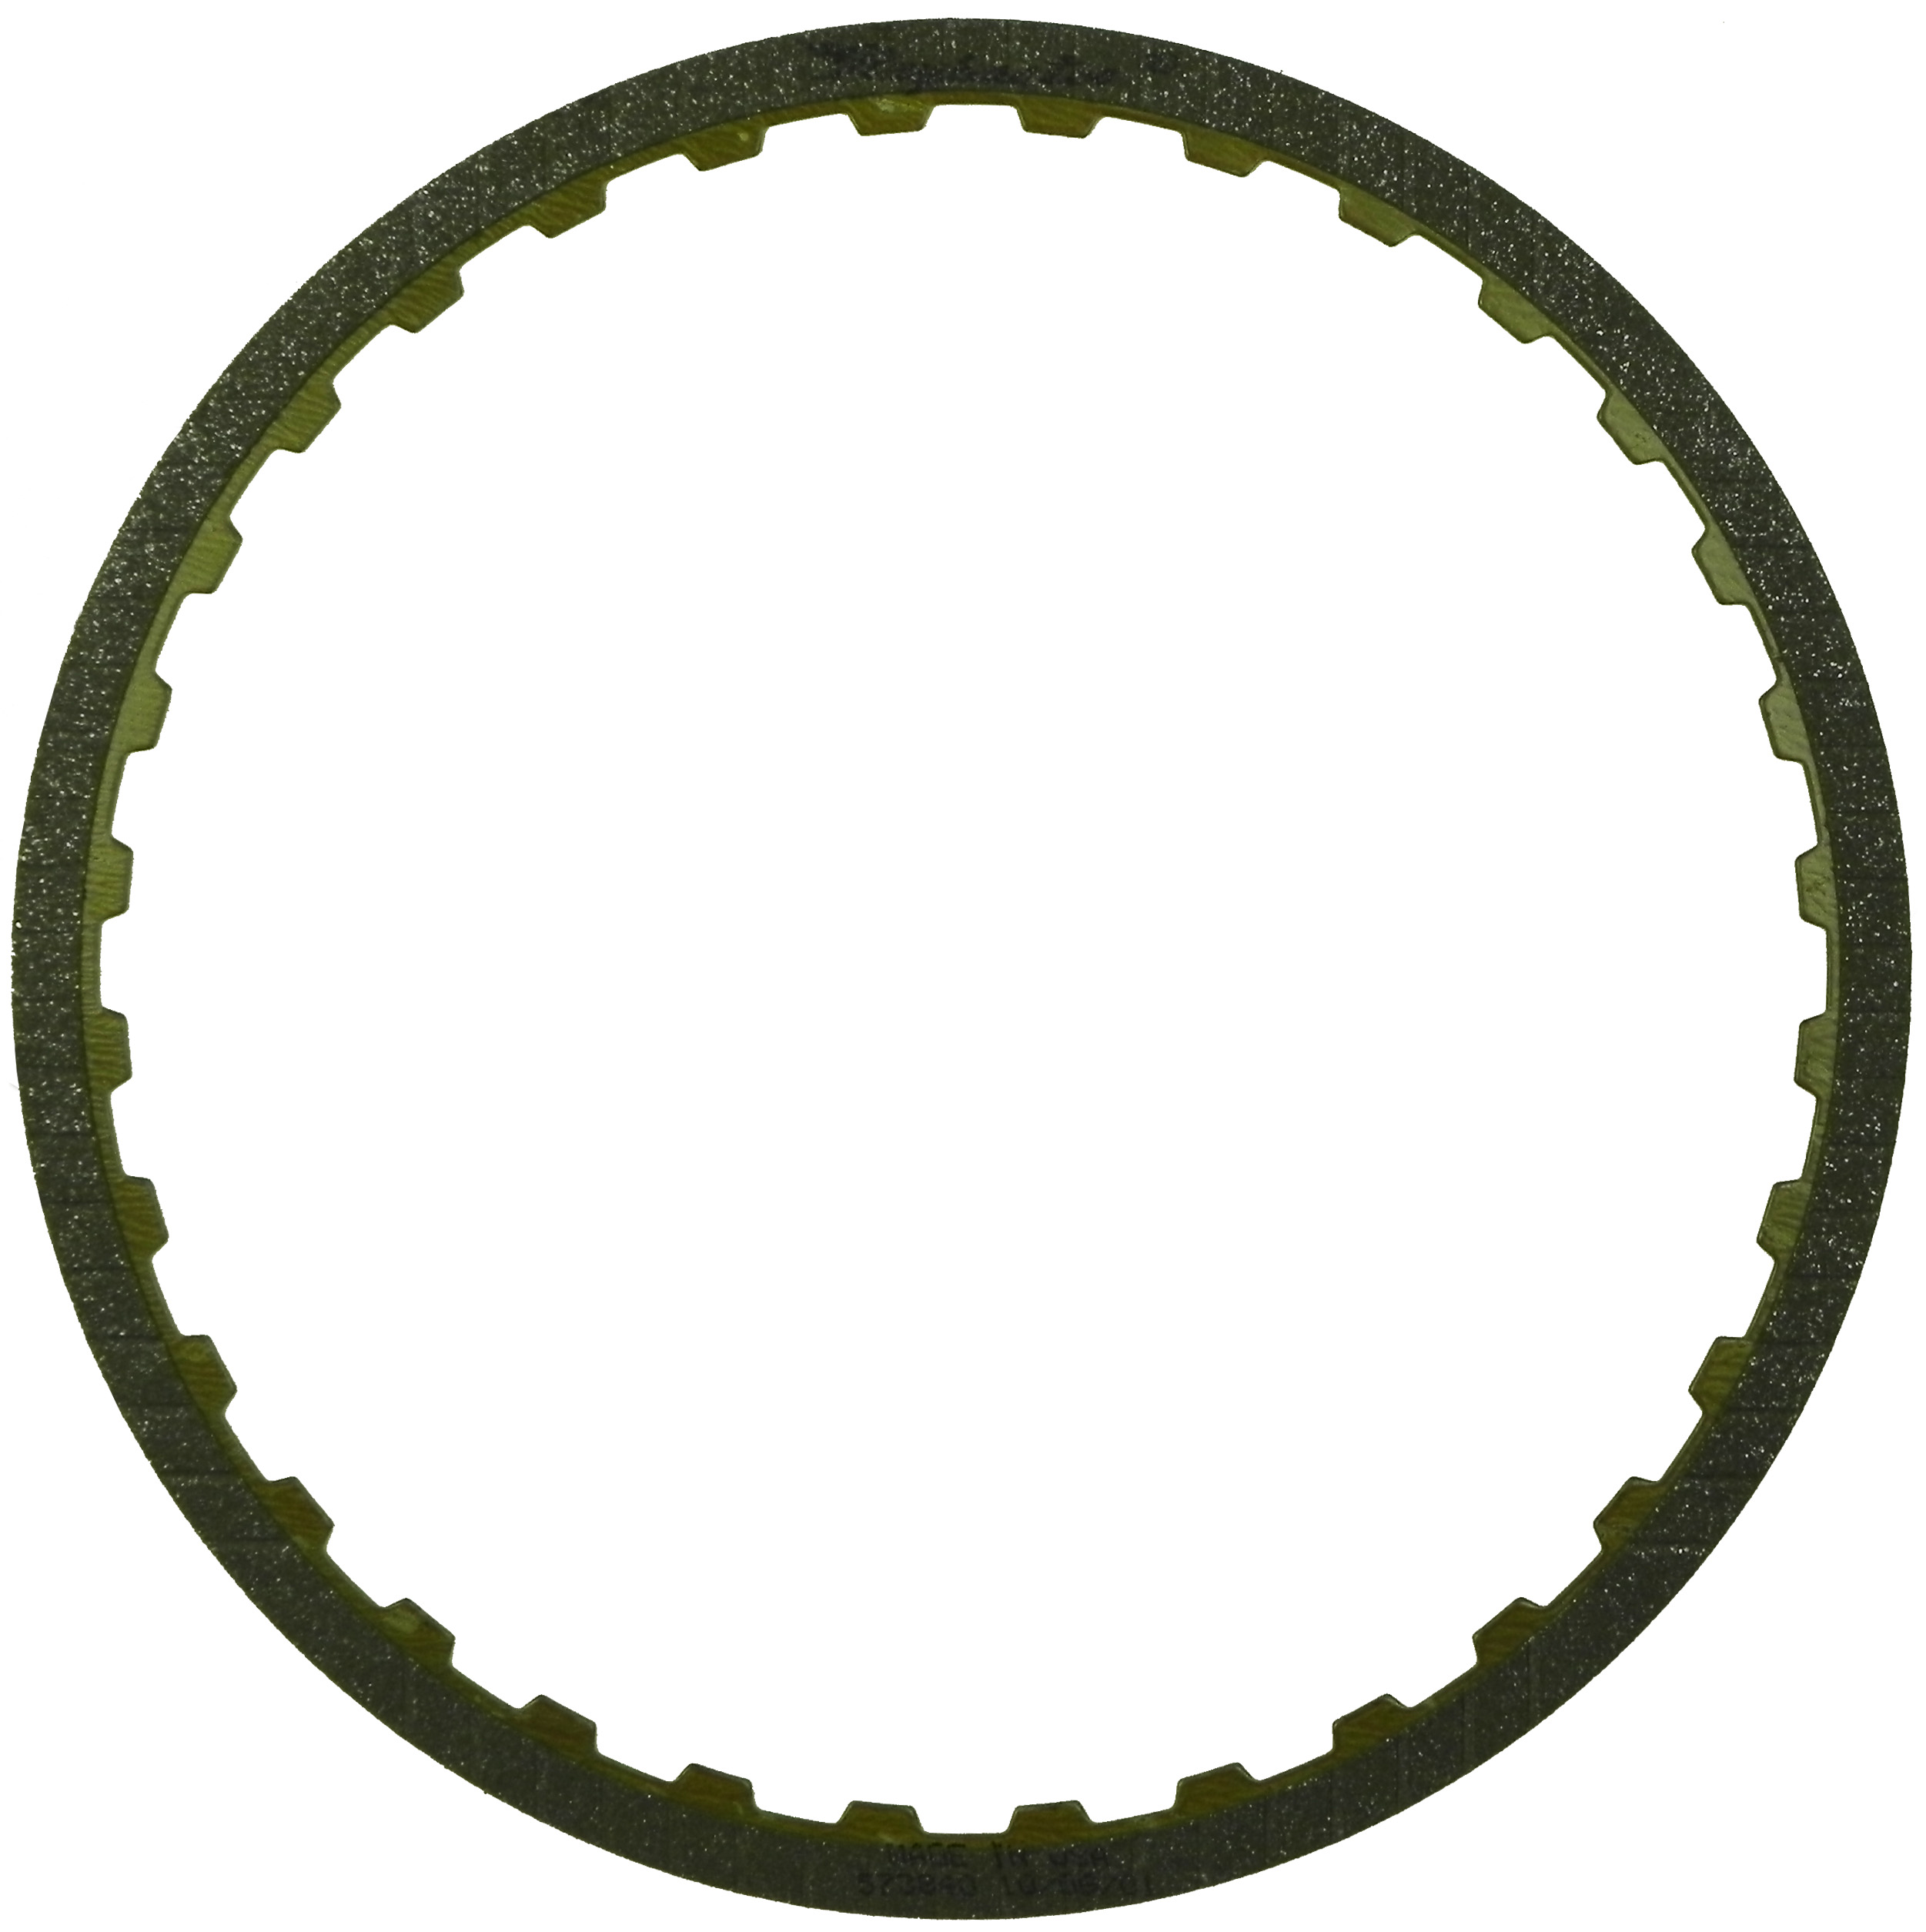 R573840 | 1992-ON Friction Clutch Plate Graphitic Low, Reverse Graphitic